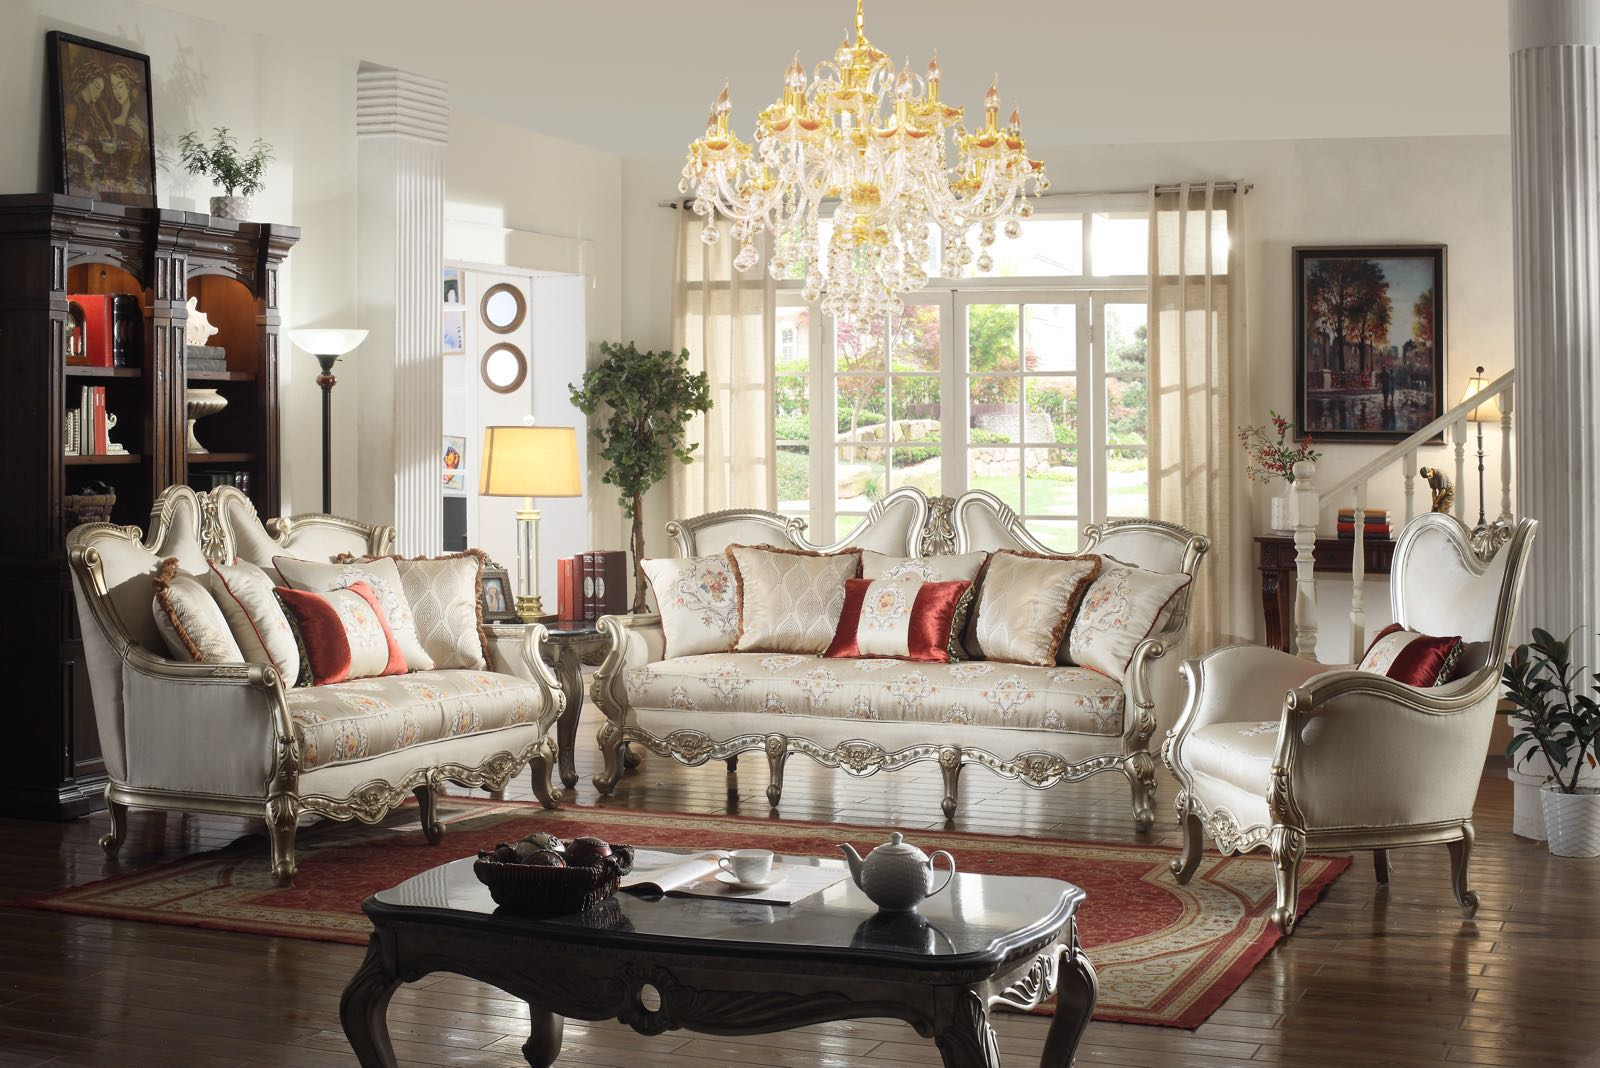 Aria Classical Living, Aria, Sofa Sets by Midha Furniture to Brampton, Mississauga, Etobicoke, Toronto, Scraborough, Caledon, Oakville, Markham, Ajax, Pickering, Oshawa, Richmondhill, Kitchener, Hamilton and GTA area